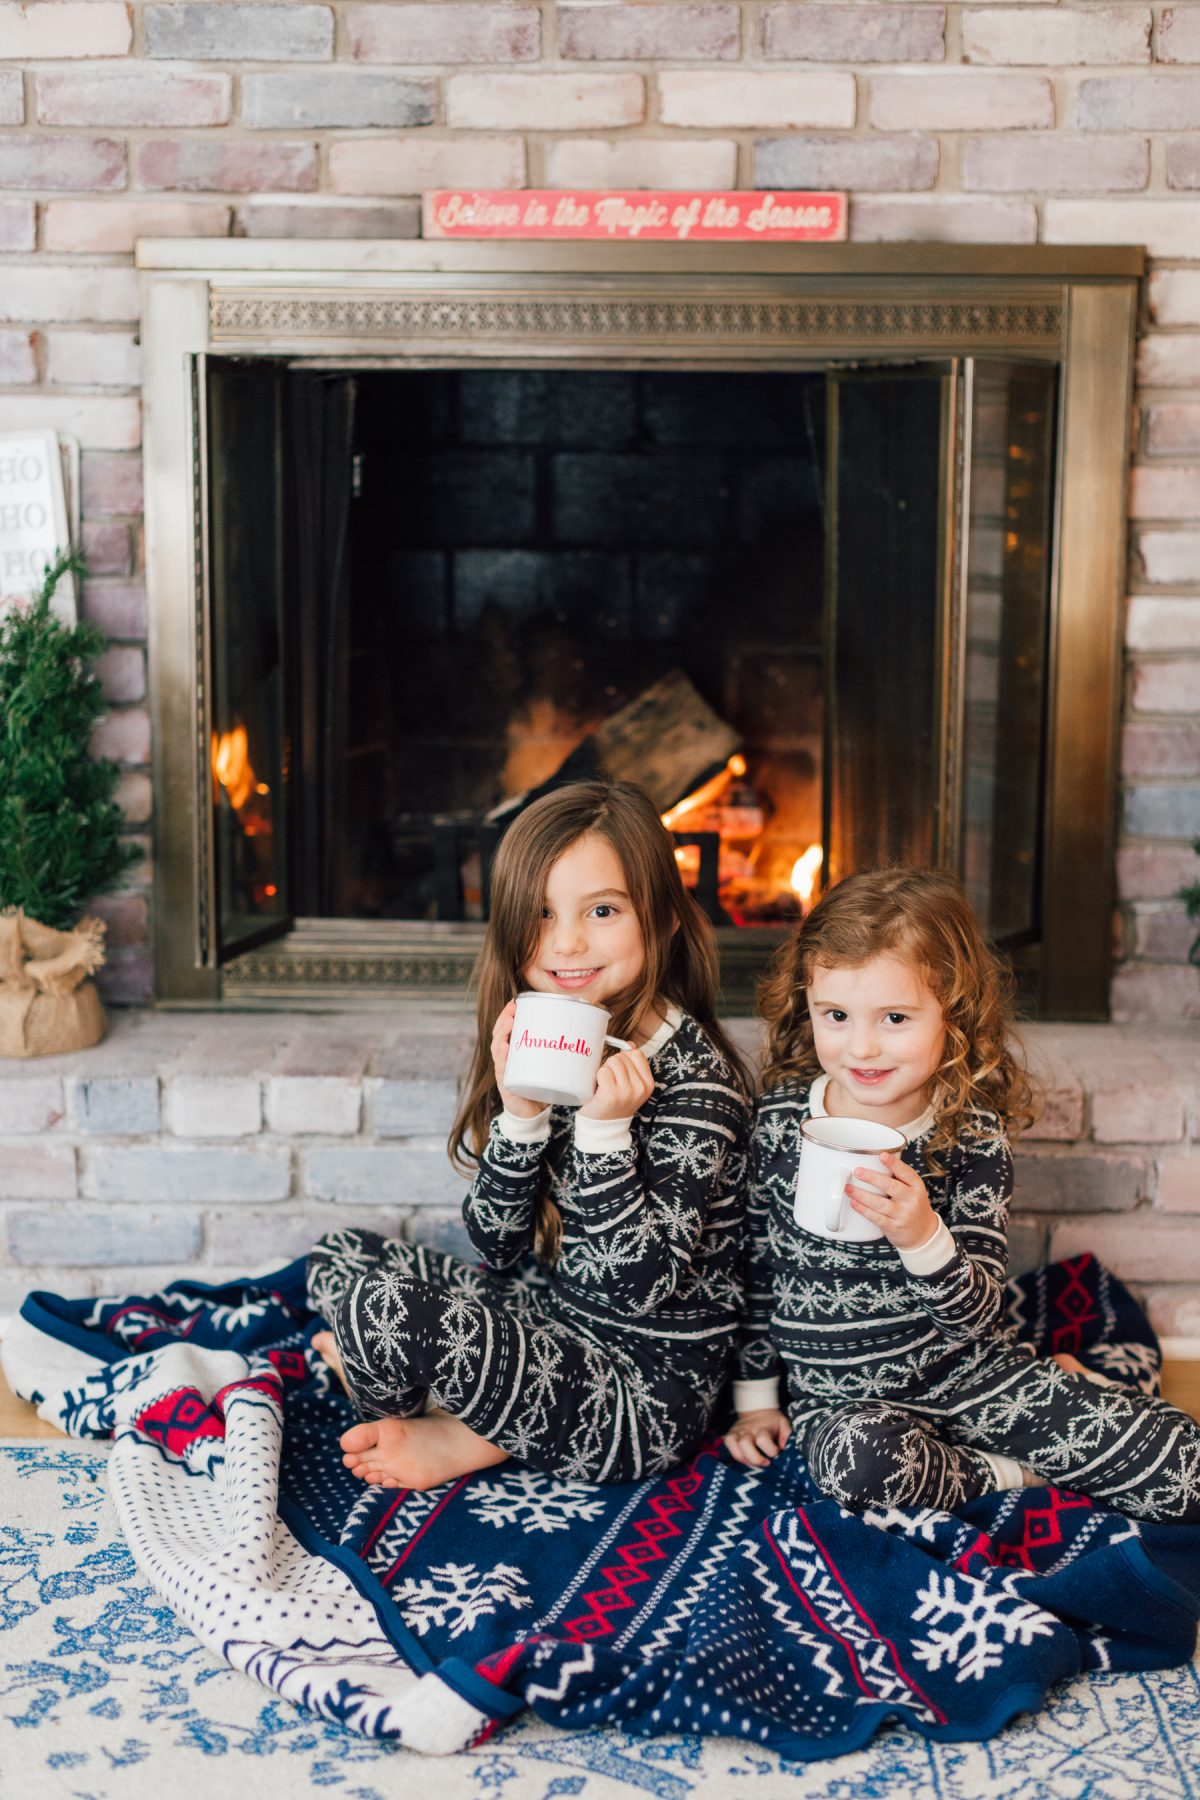 Holiday Family Photo Inspiration - Little Girls Sipping Hot Cocoa by the Fireplace with Christmas Pajamas and Chappy Wrap Blanket